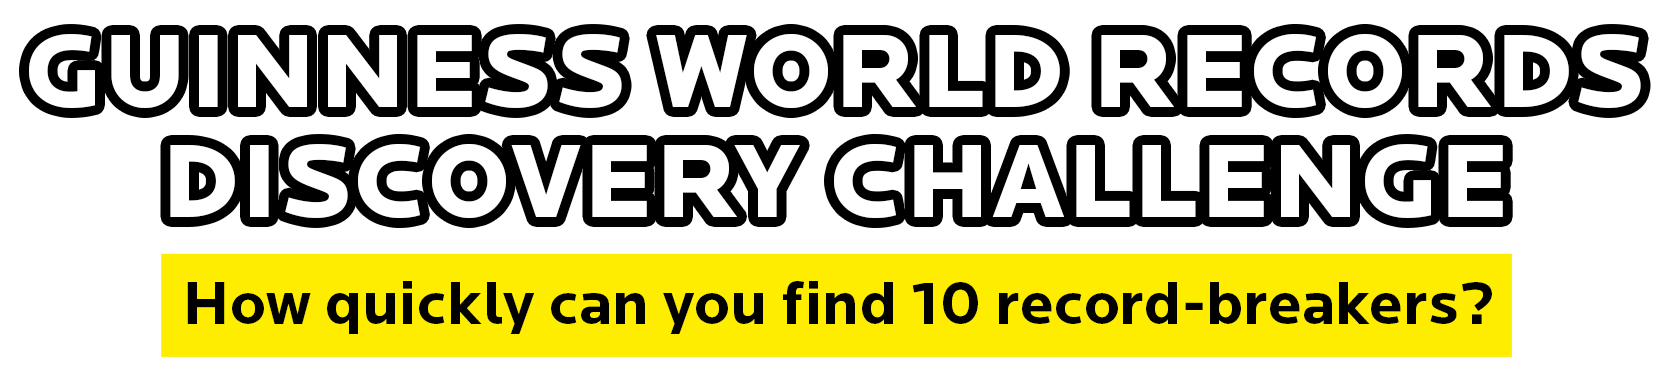 guinness-world-records-discovery-challenge